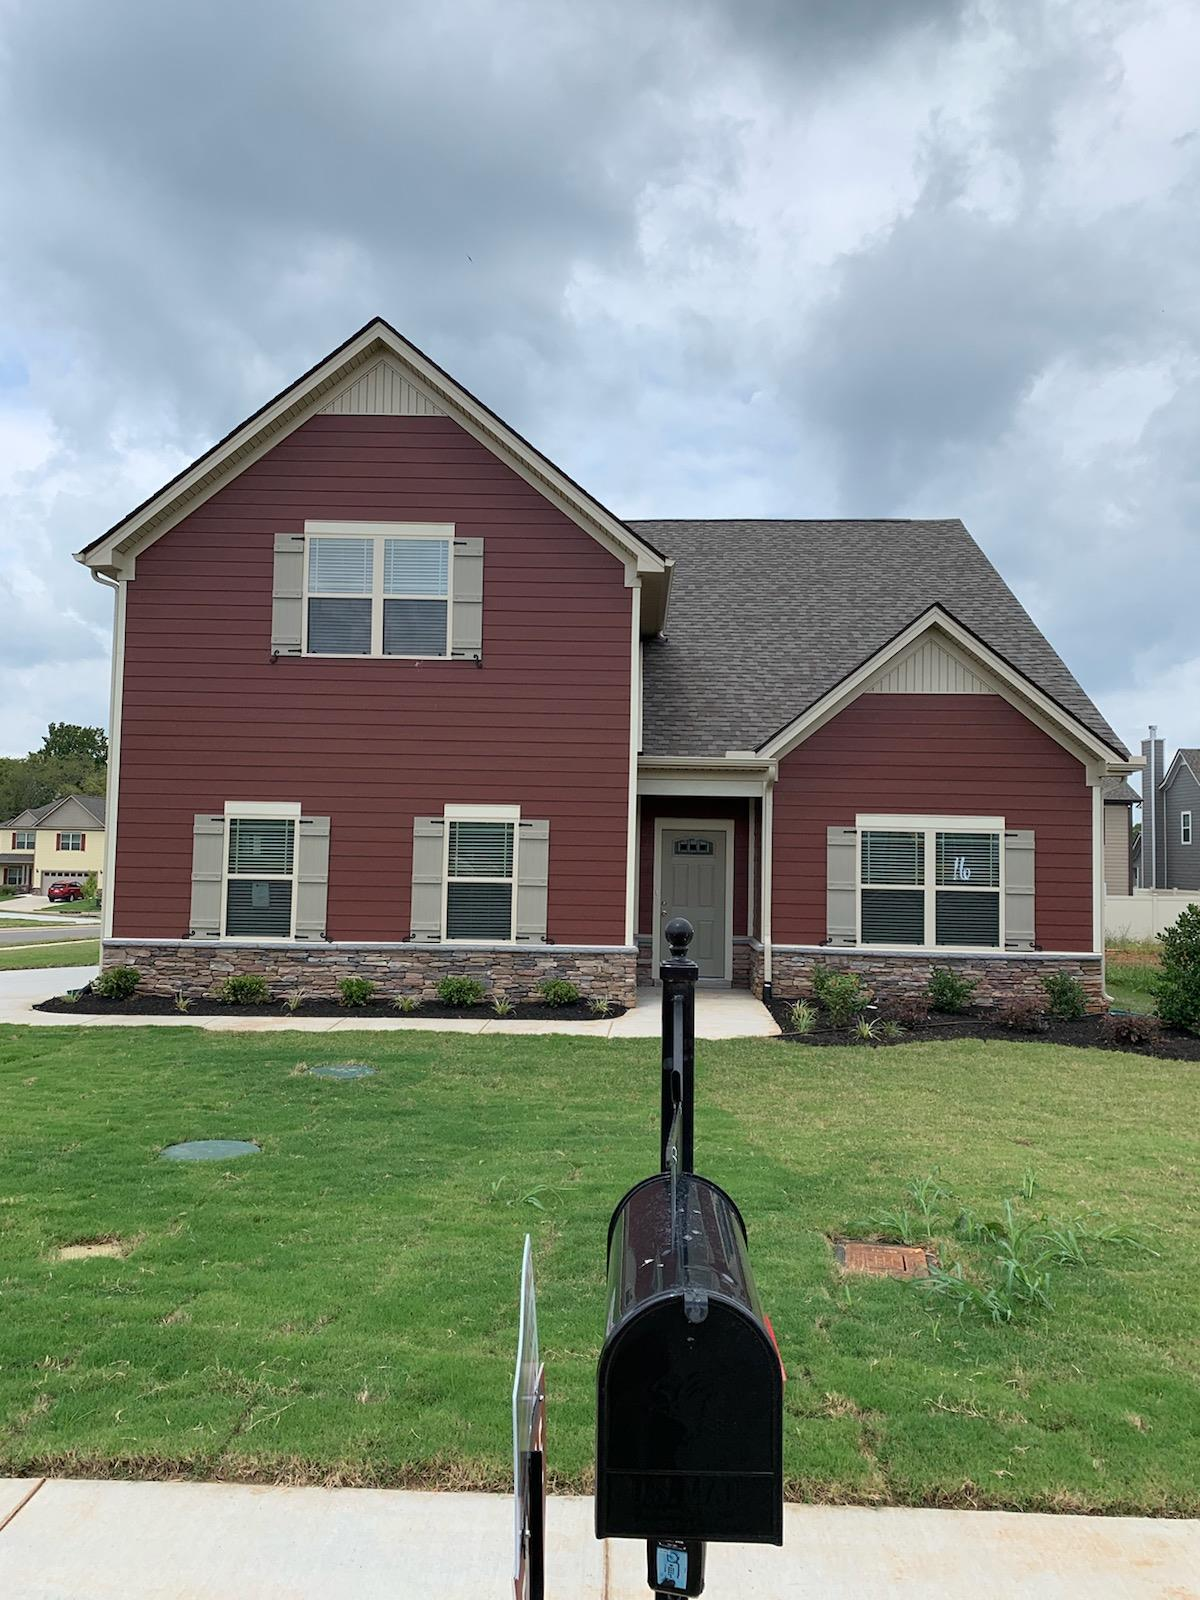 2317 Peach Blossom Ct. / Lot 16, Murfreesboro, TN 37127 - Murfreesboro, TN real estate listing